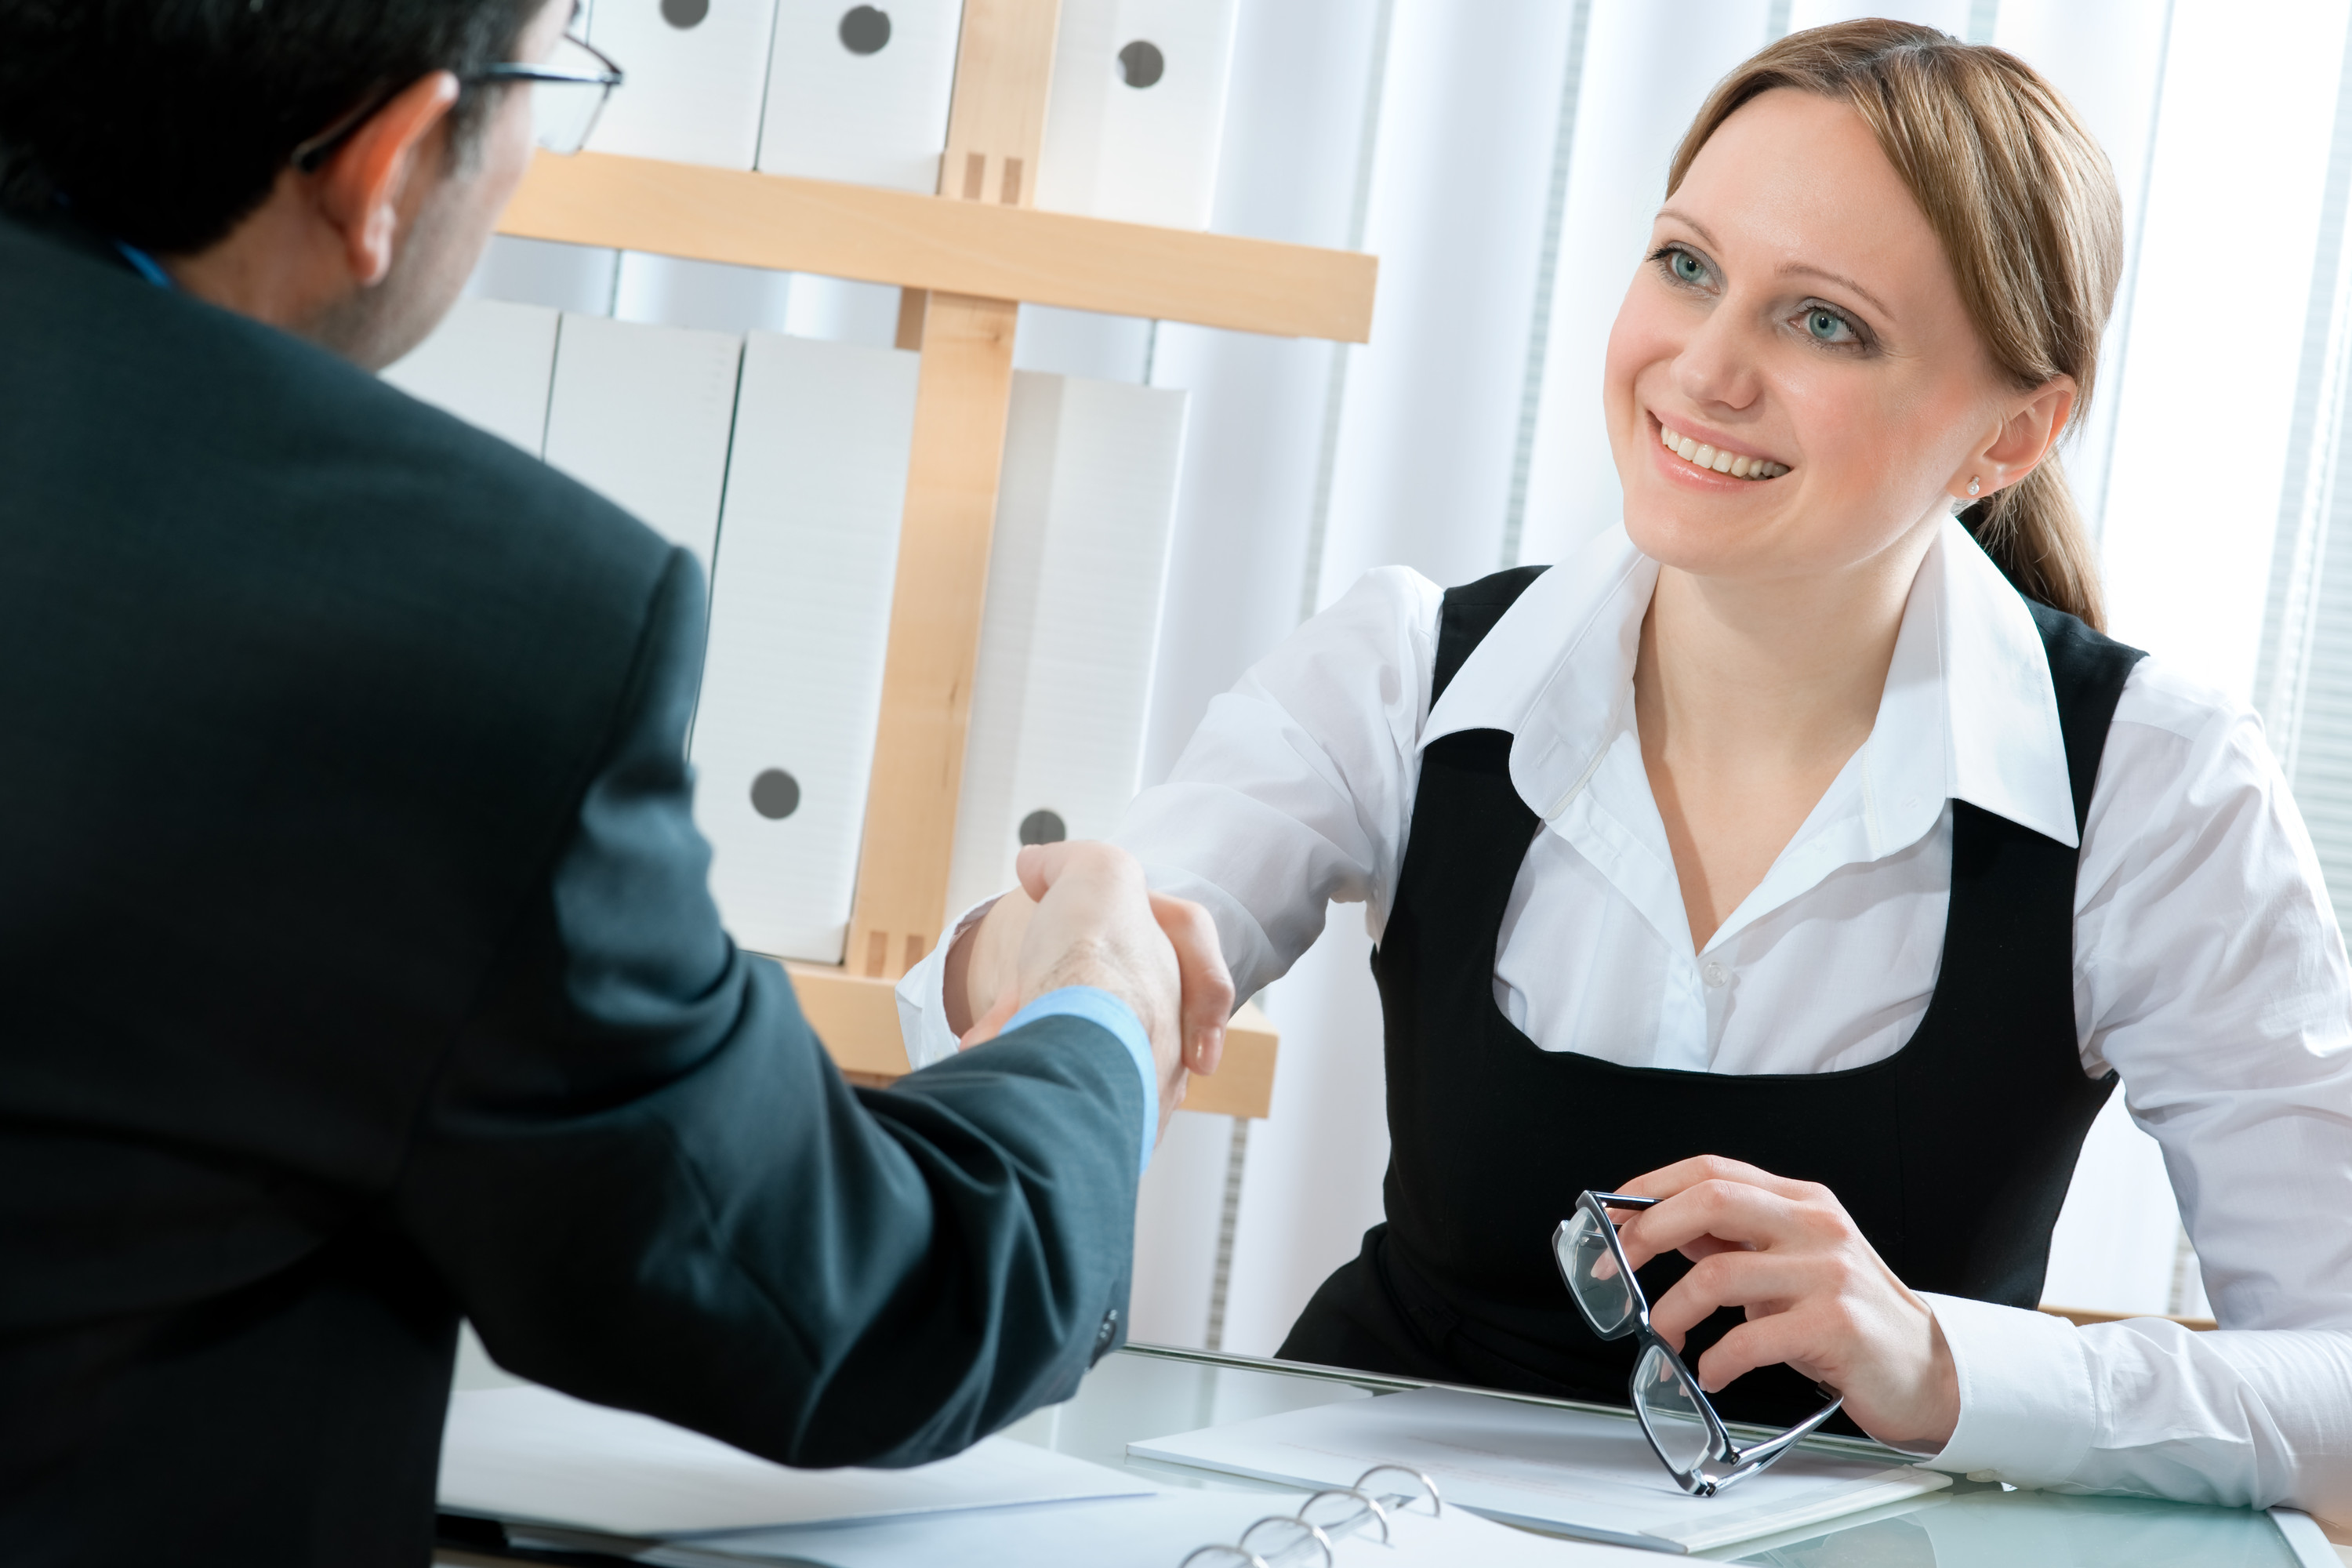 Job interviews can be nerve-wracking